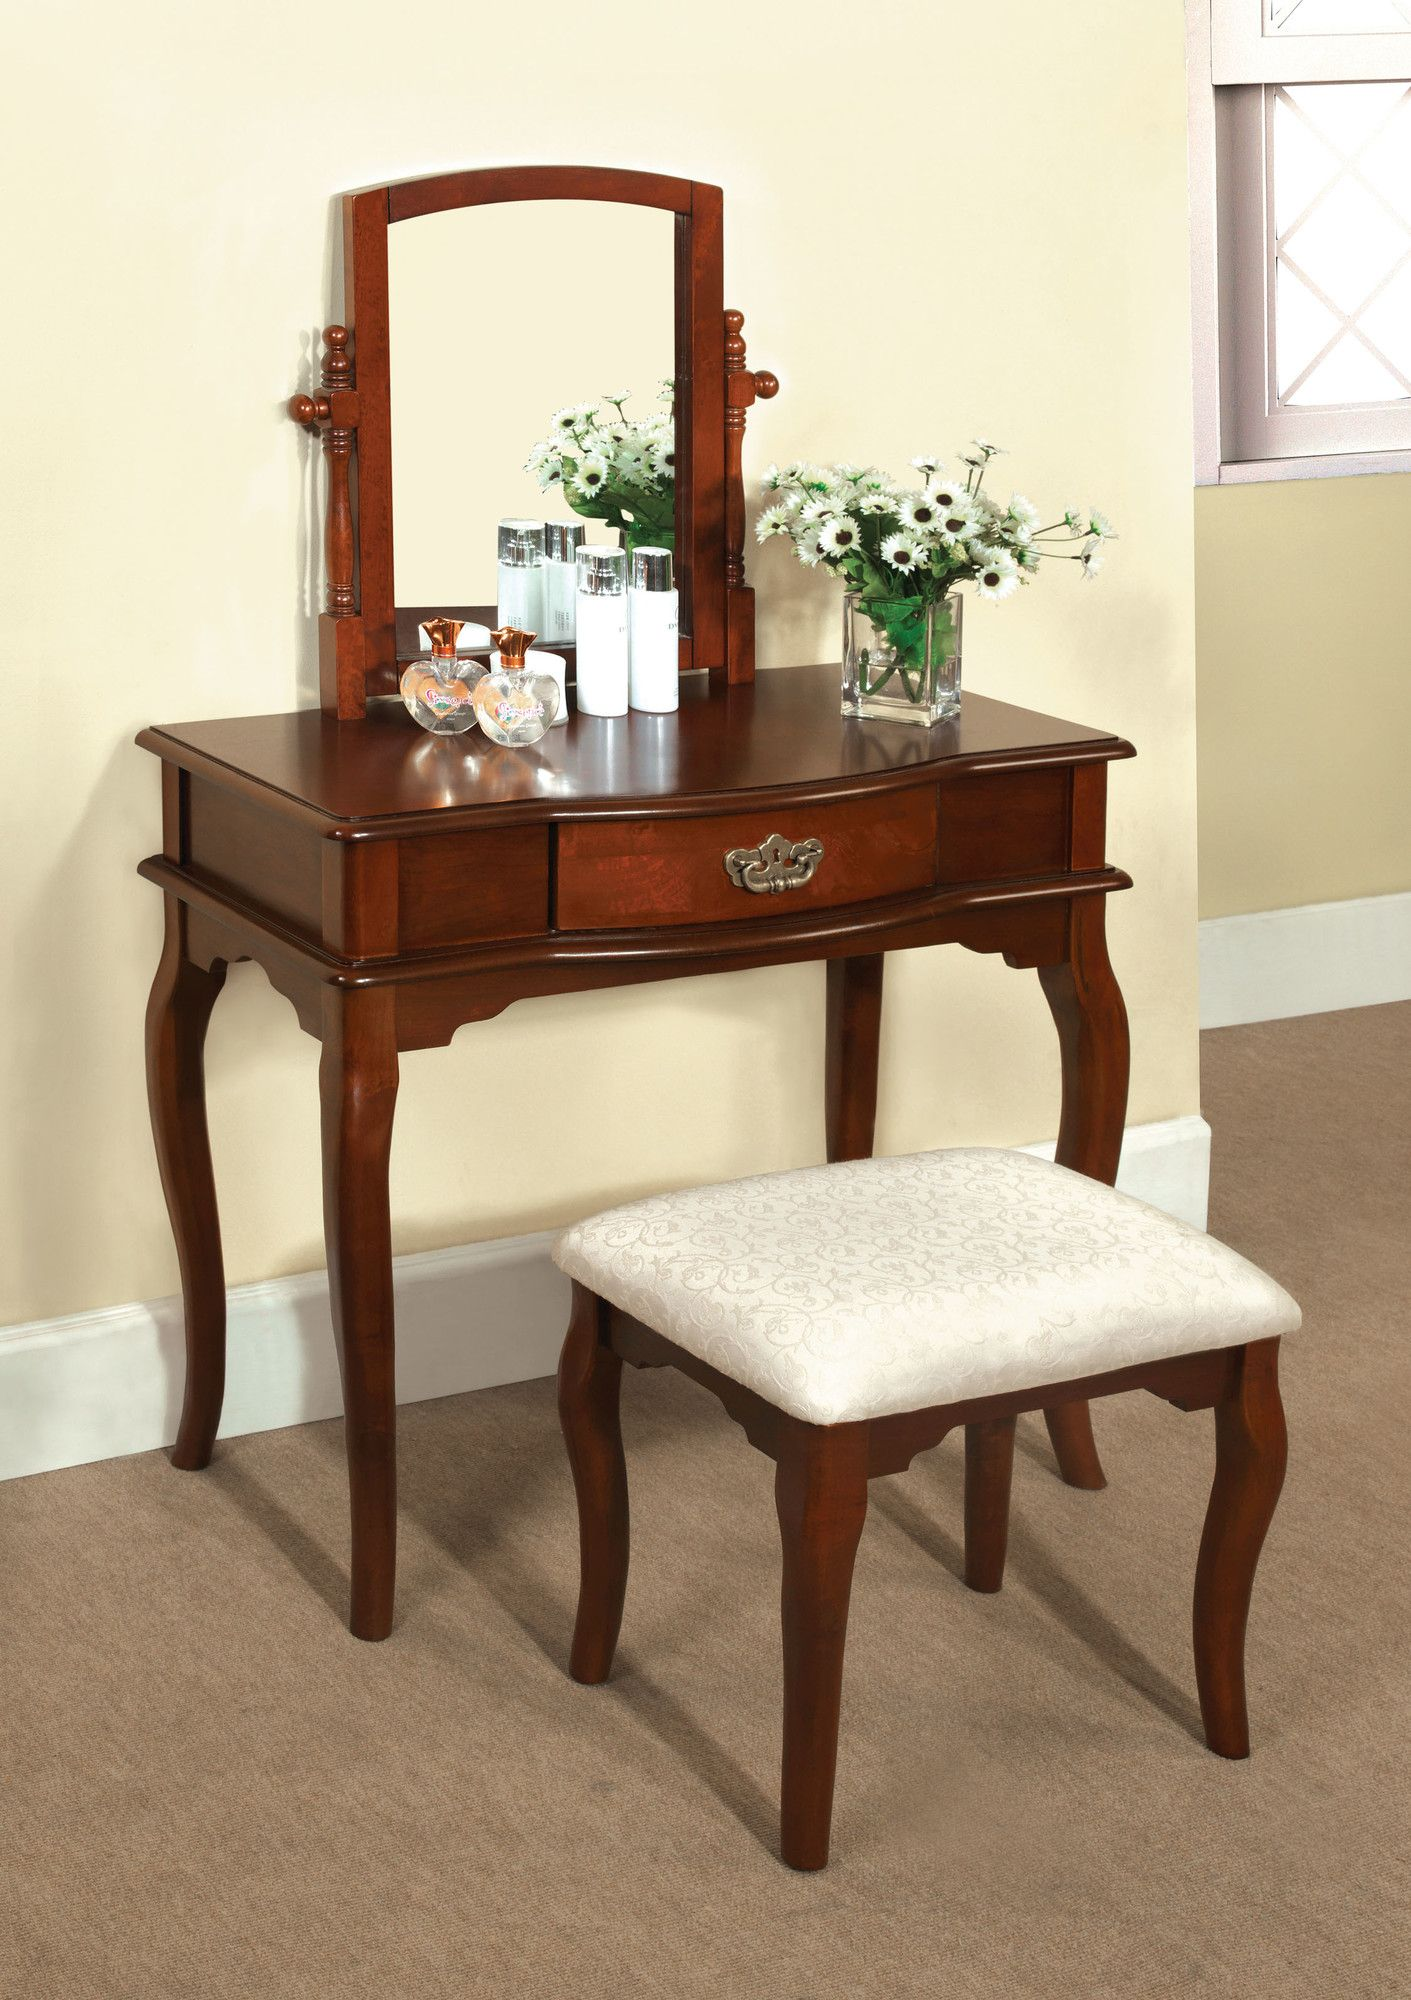 Mirrored Vanity Table And Stool: Hokku Designs Coreen Vanity W/ Cabriole Legs, Mahogany